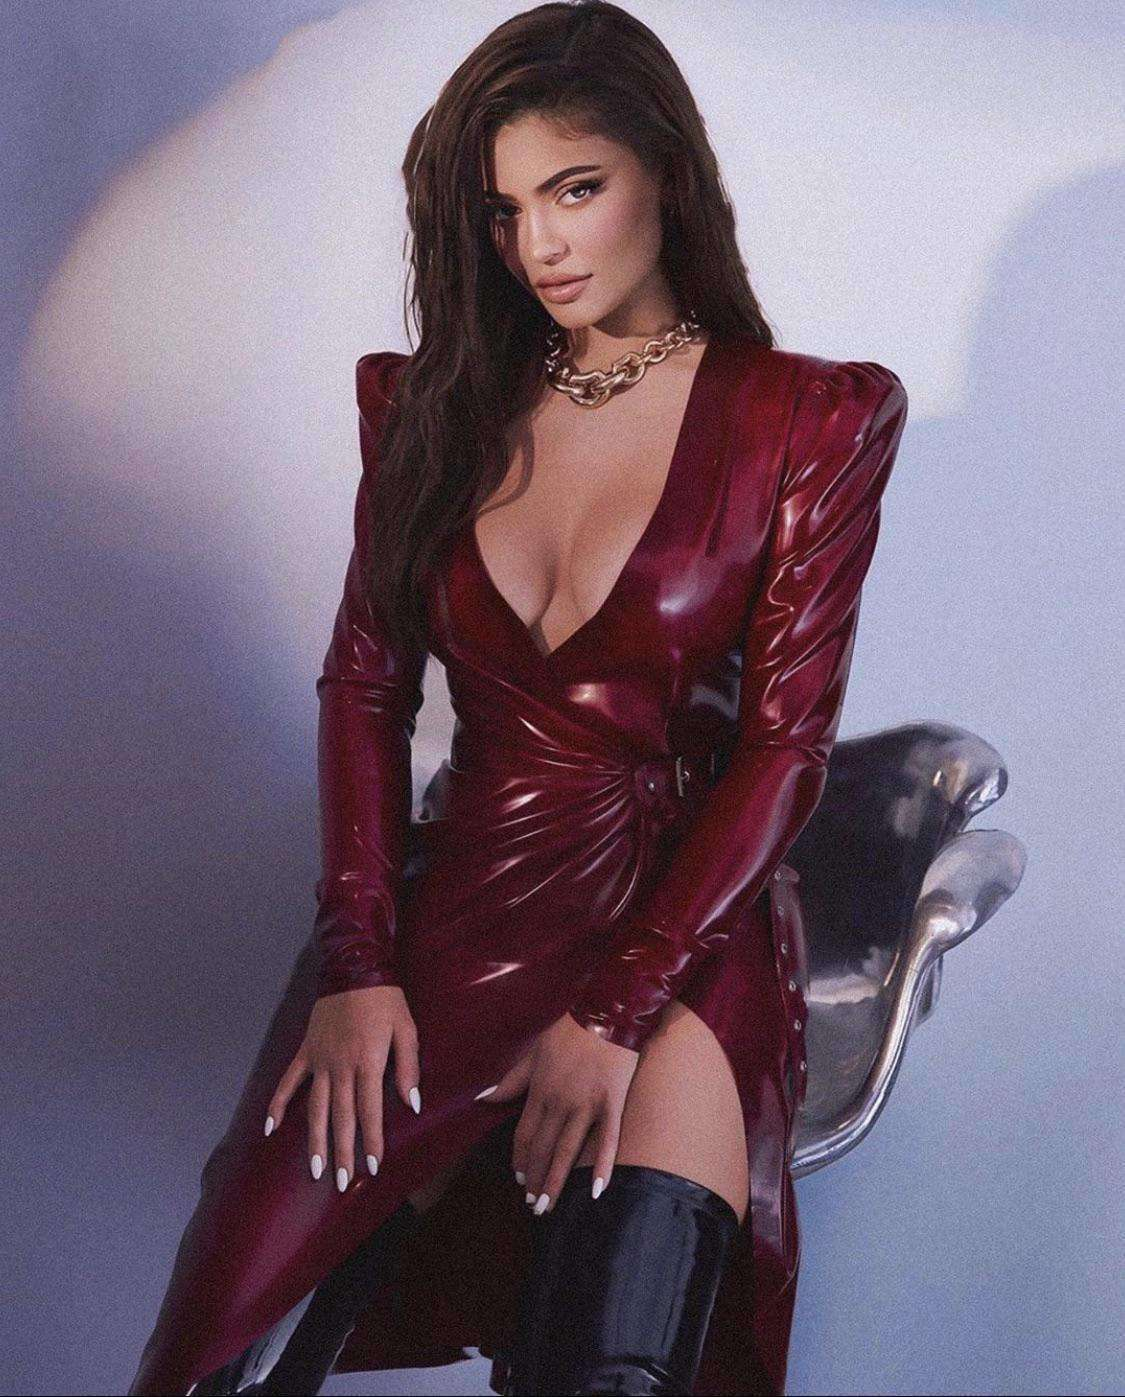 Kylie Jenner in Vogue Hong Kong Magazine Photoshoot - August 2020